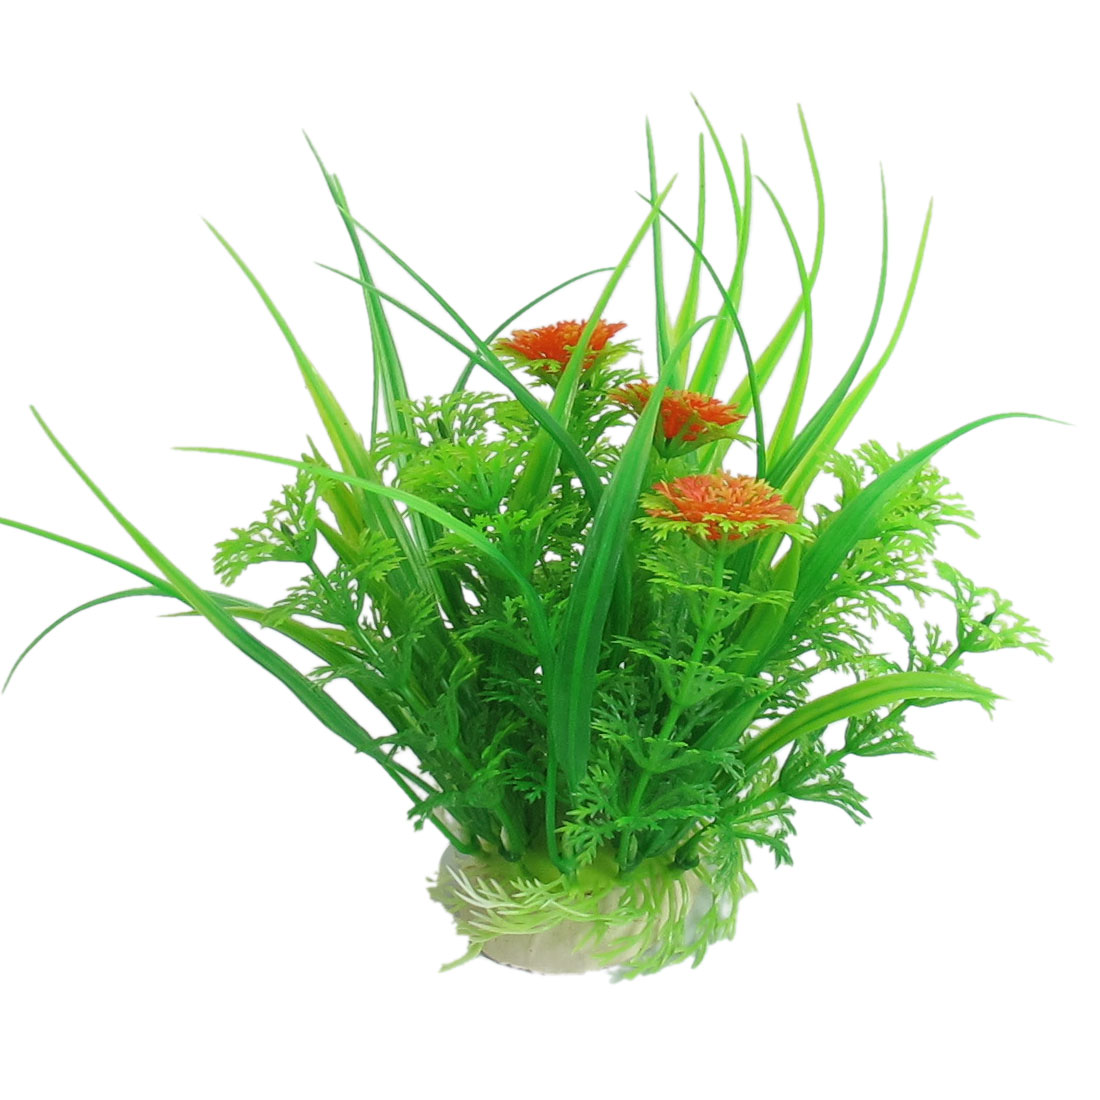 "Fish Tank Aquarium Green Plastic Aquatic Grass Plant Ornament 4.7"" Height"